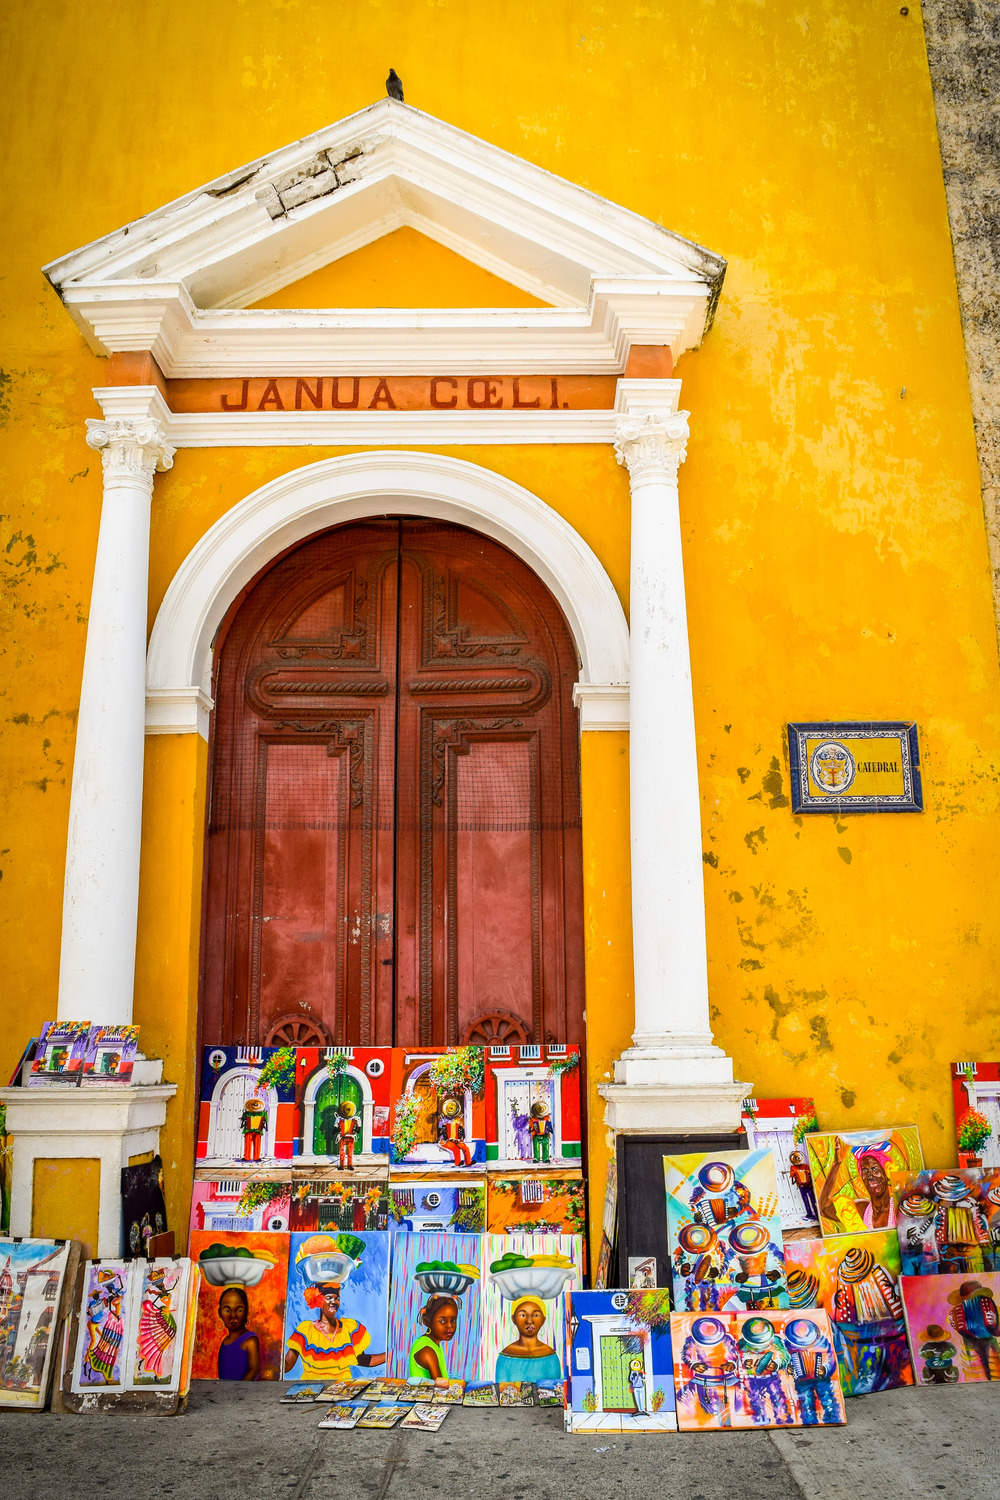 Artwork for sale in Cartagena